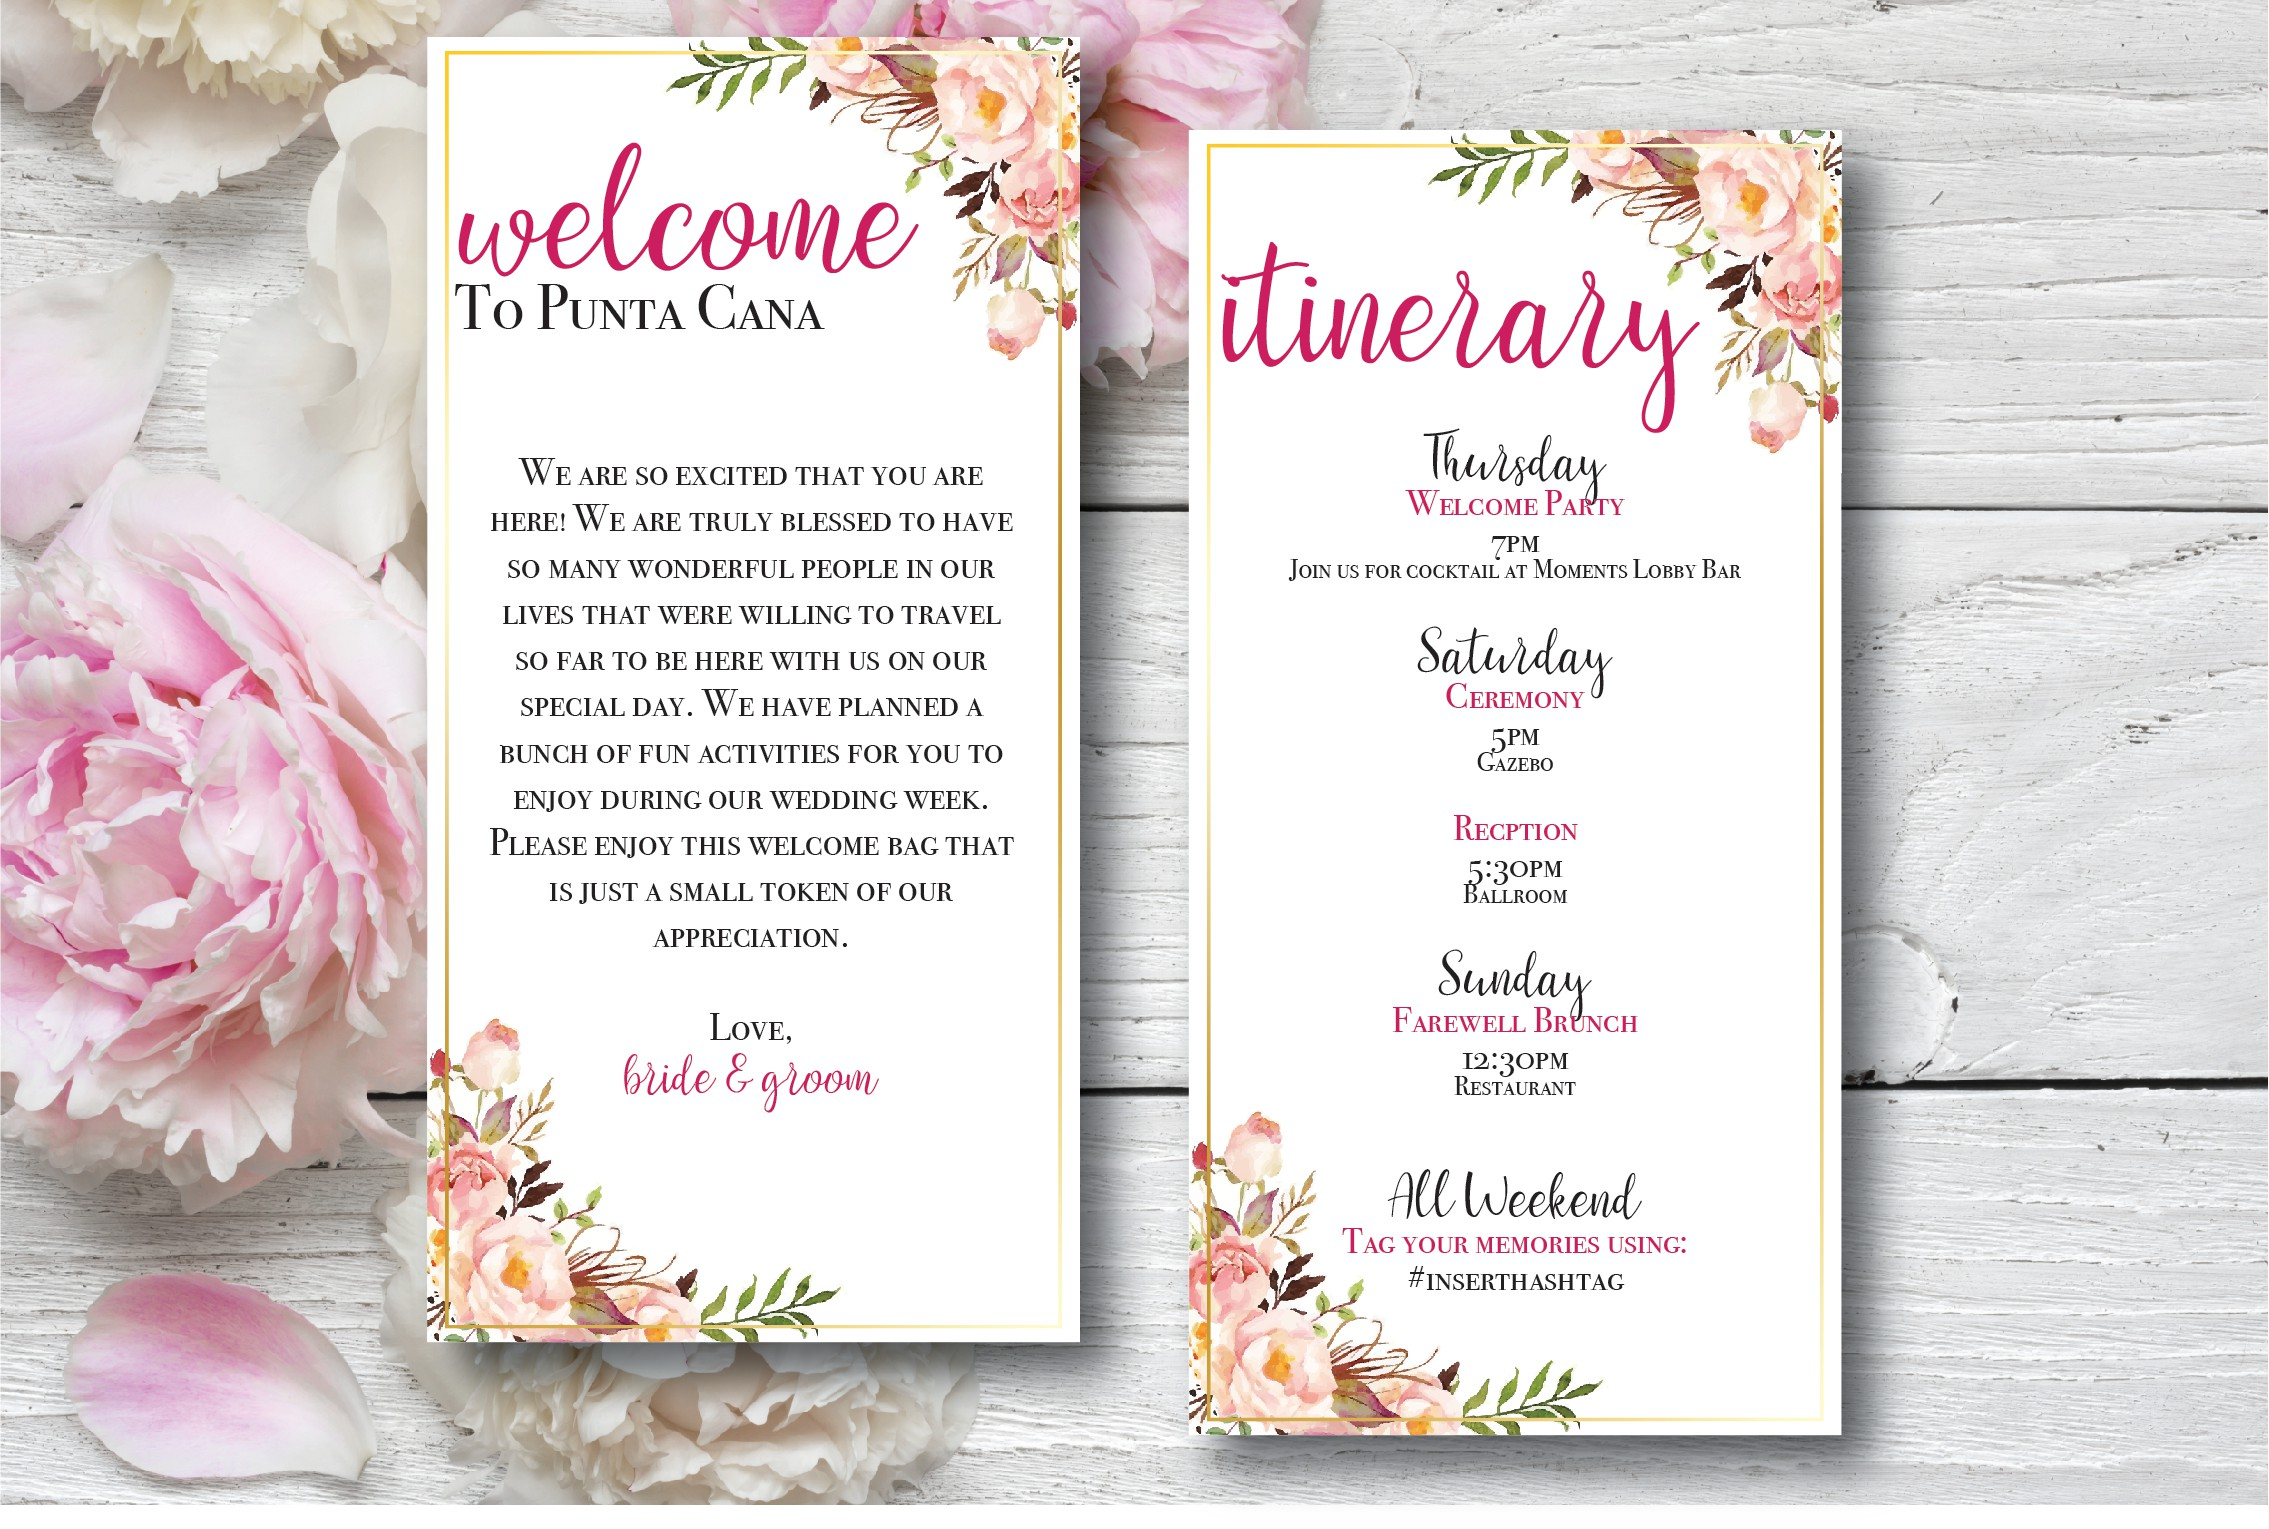 Creative Destination Wedding Ideas | Destination Wedding Details